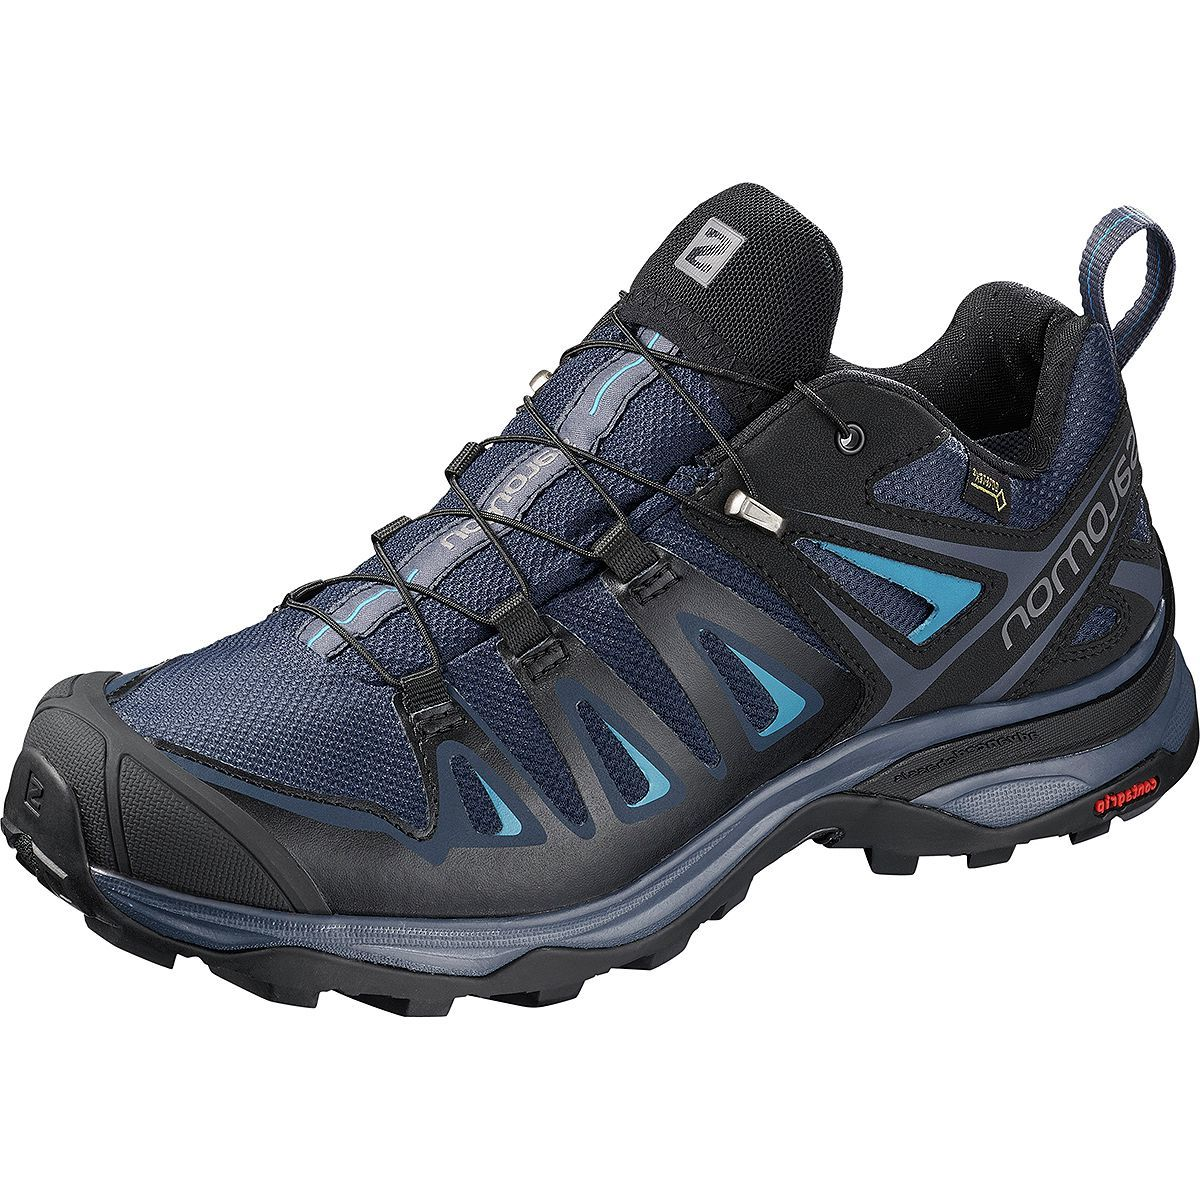 Salomon X Ultra 3 GTX Hiking Shoe - Women's